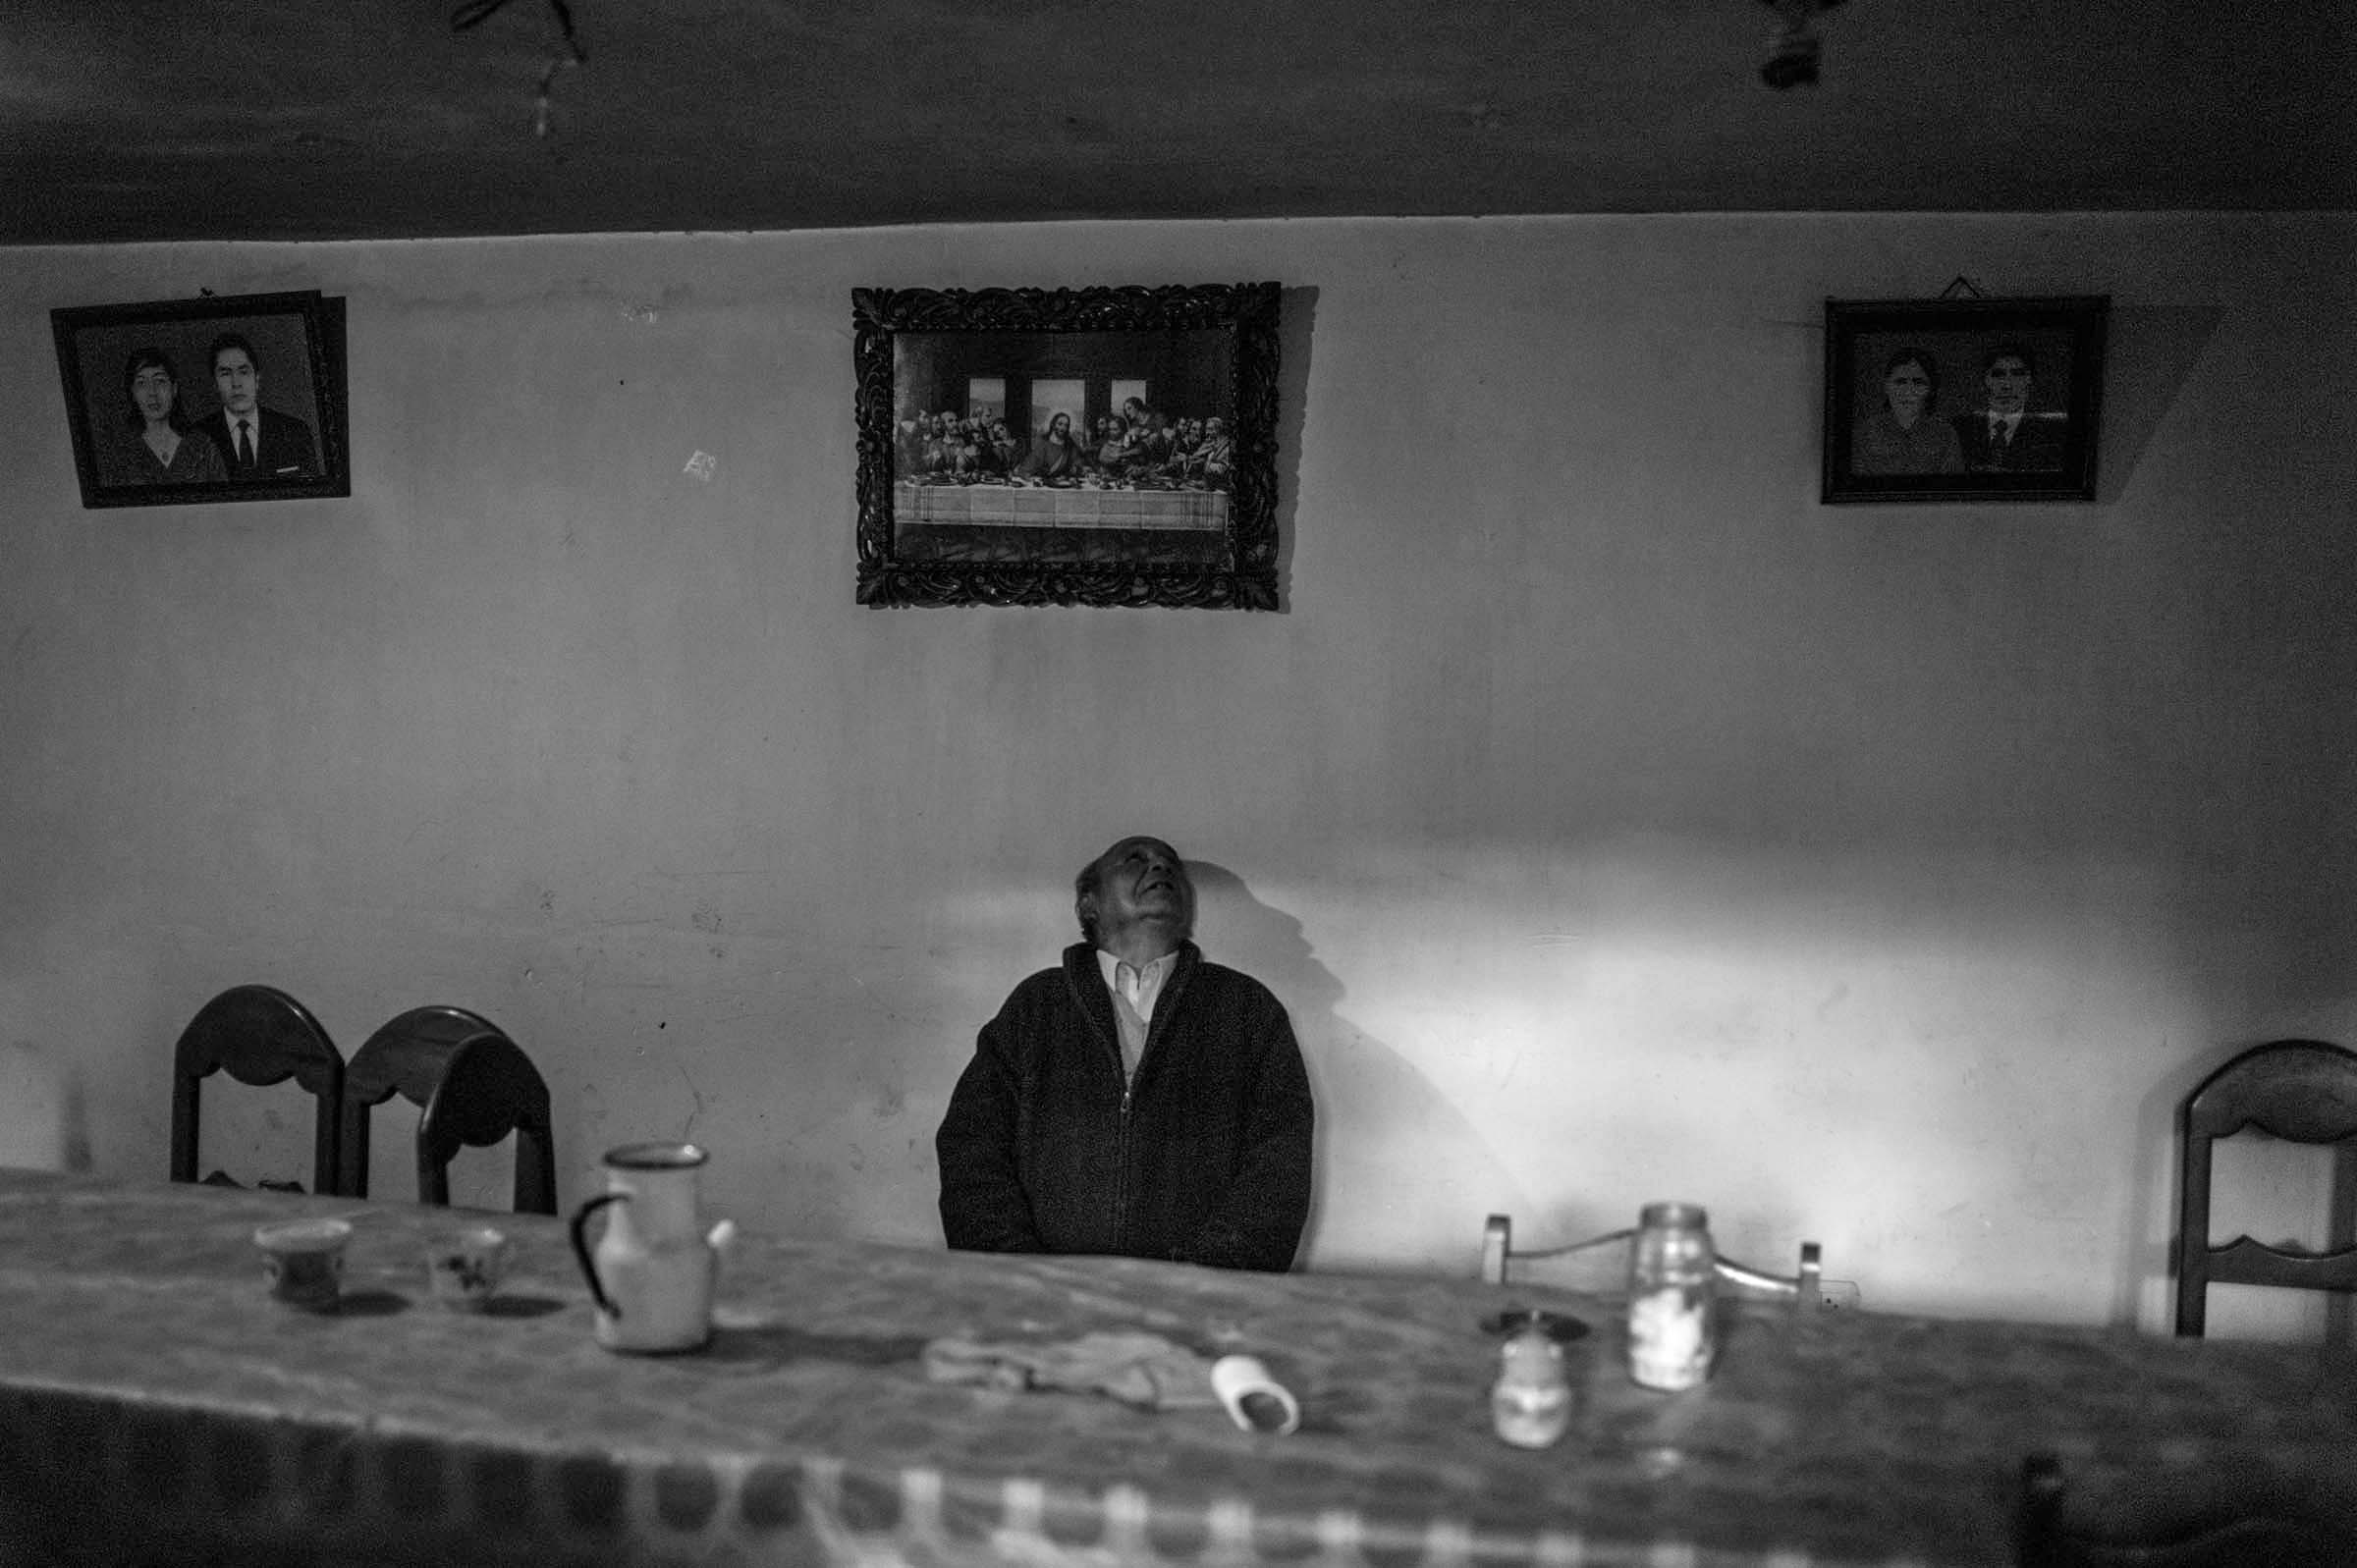 A man looks up at the image of the Last Super after a family meal in the Sacred Valley. (Alessandro Cinque/GroundTruth)